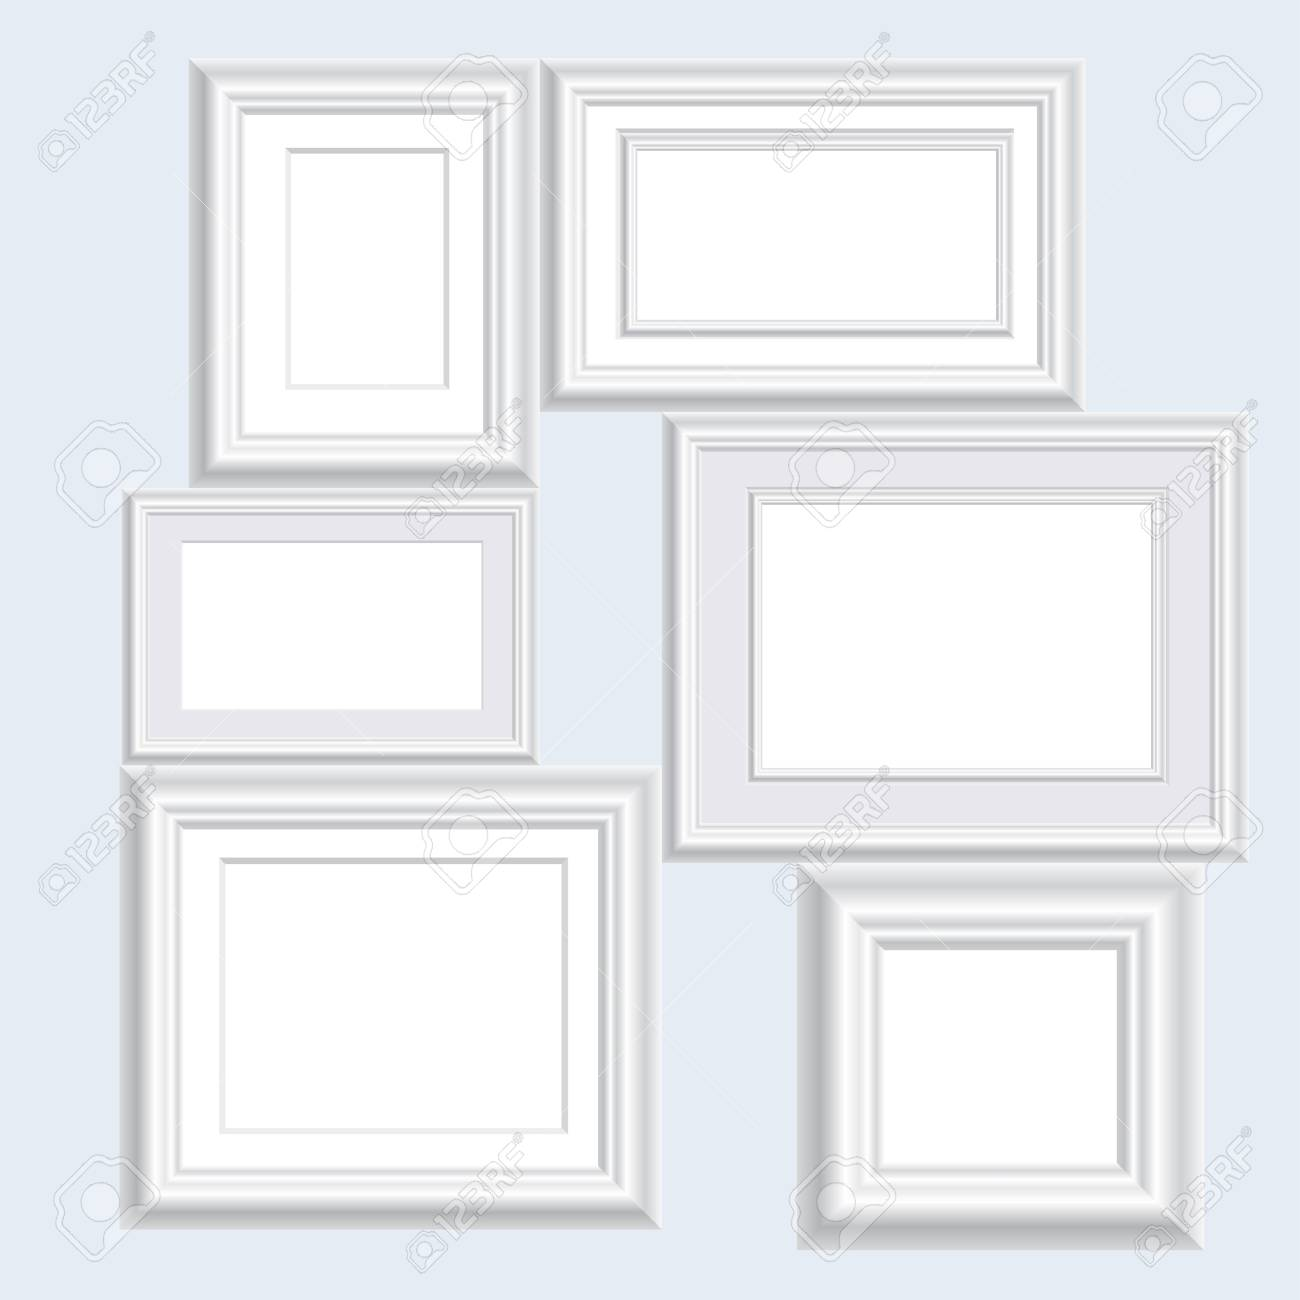 Six Blank White Frames Royalty Free Cliparts, Vectors, And Stock ...